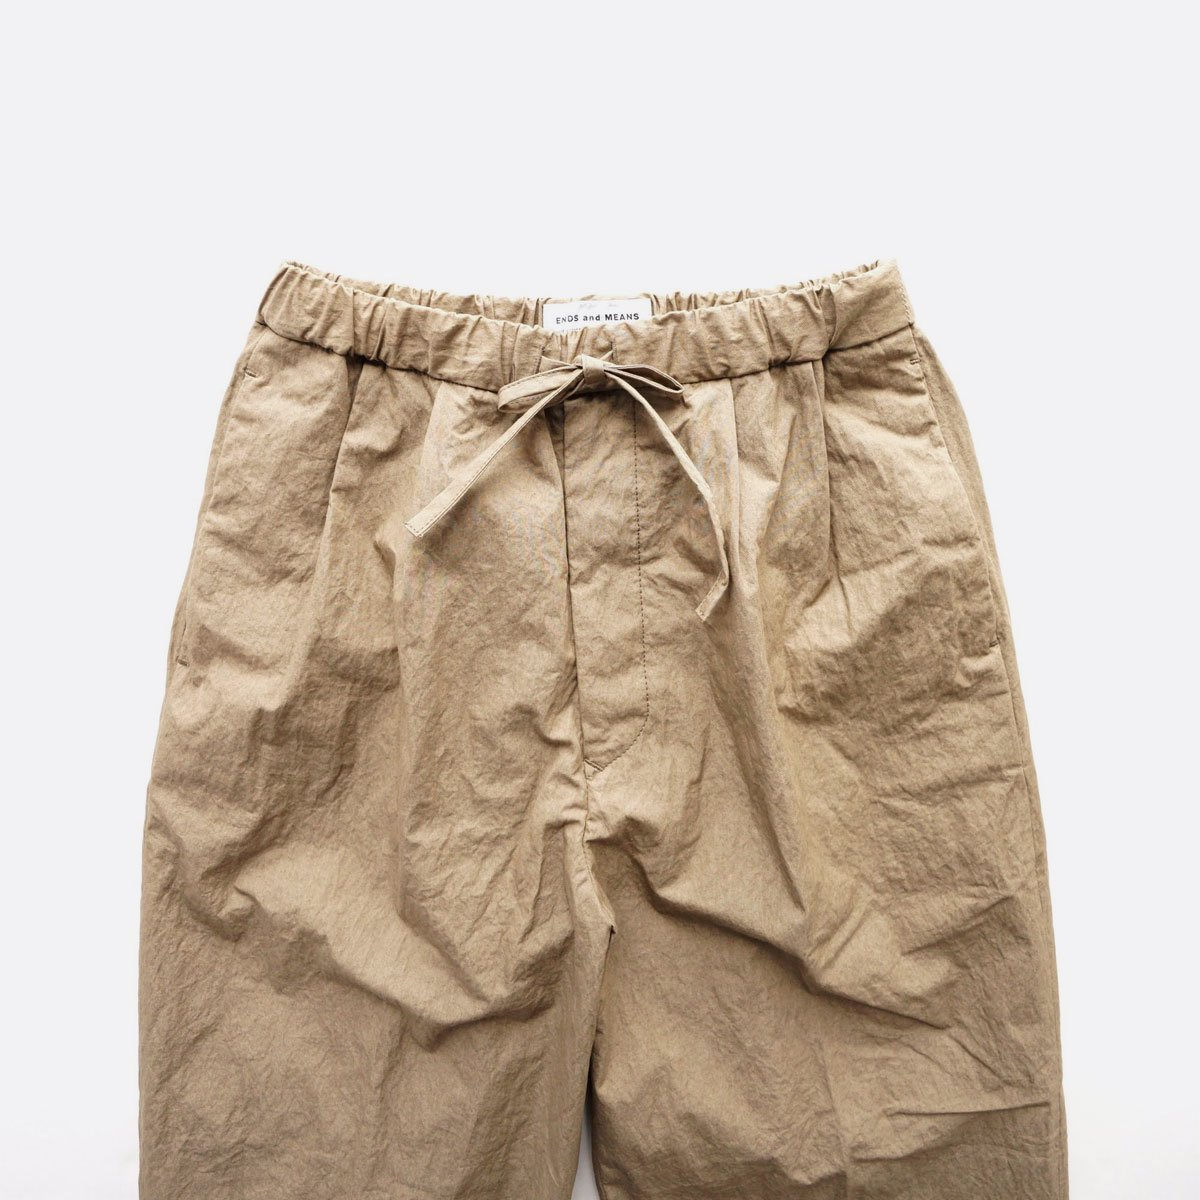 ENDS & MEANS RELAX FIT TROUSERS  (KHAKI)3